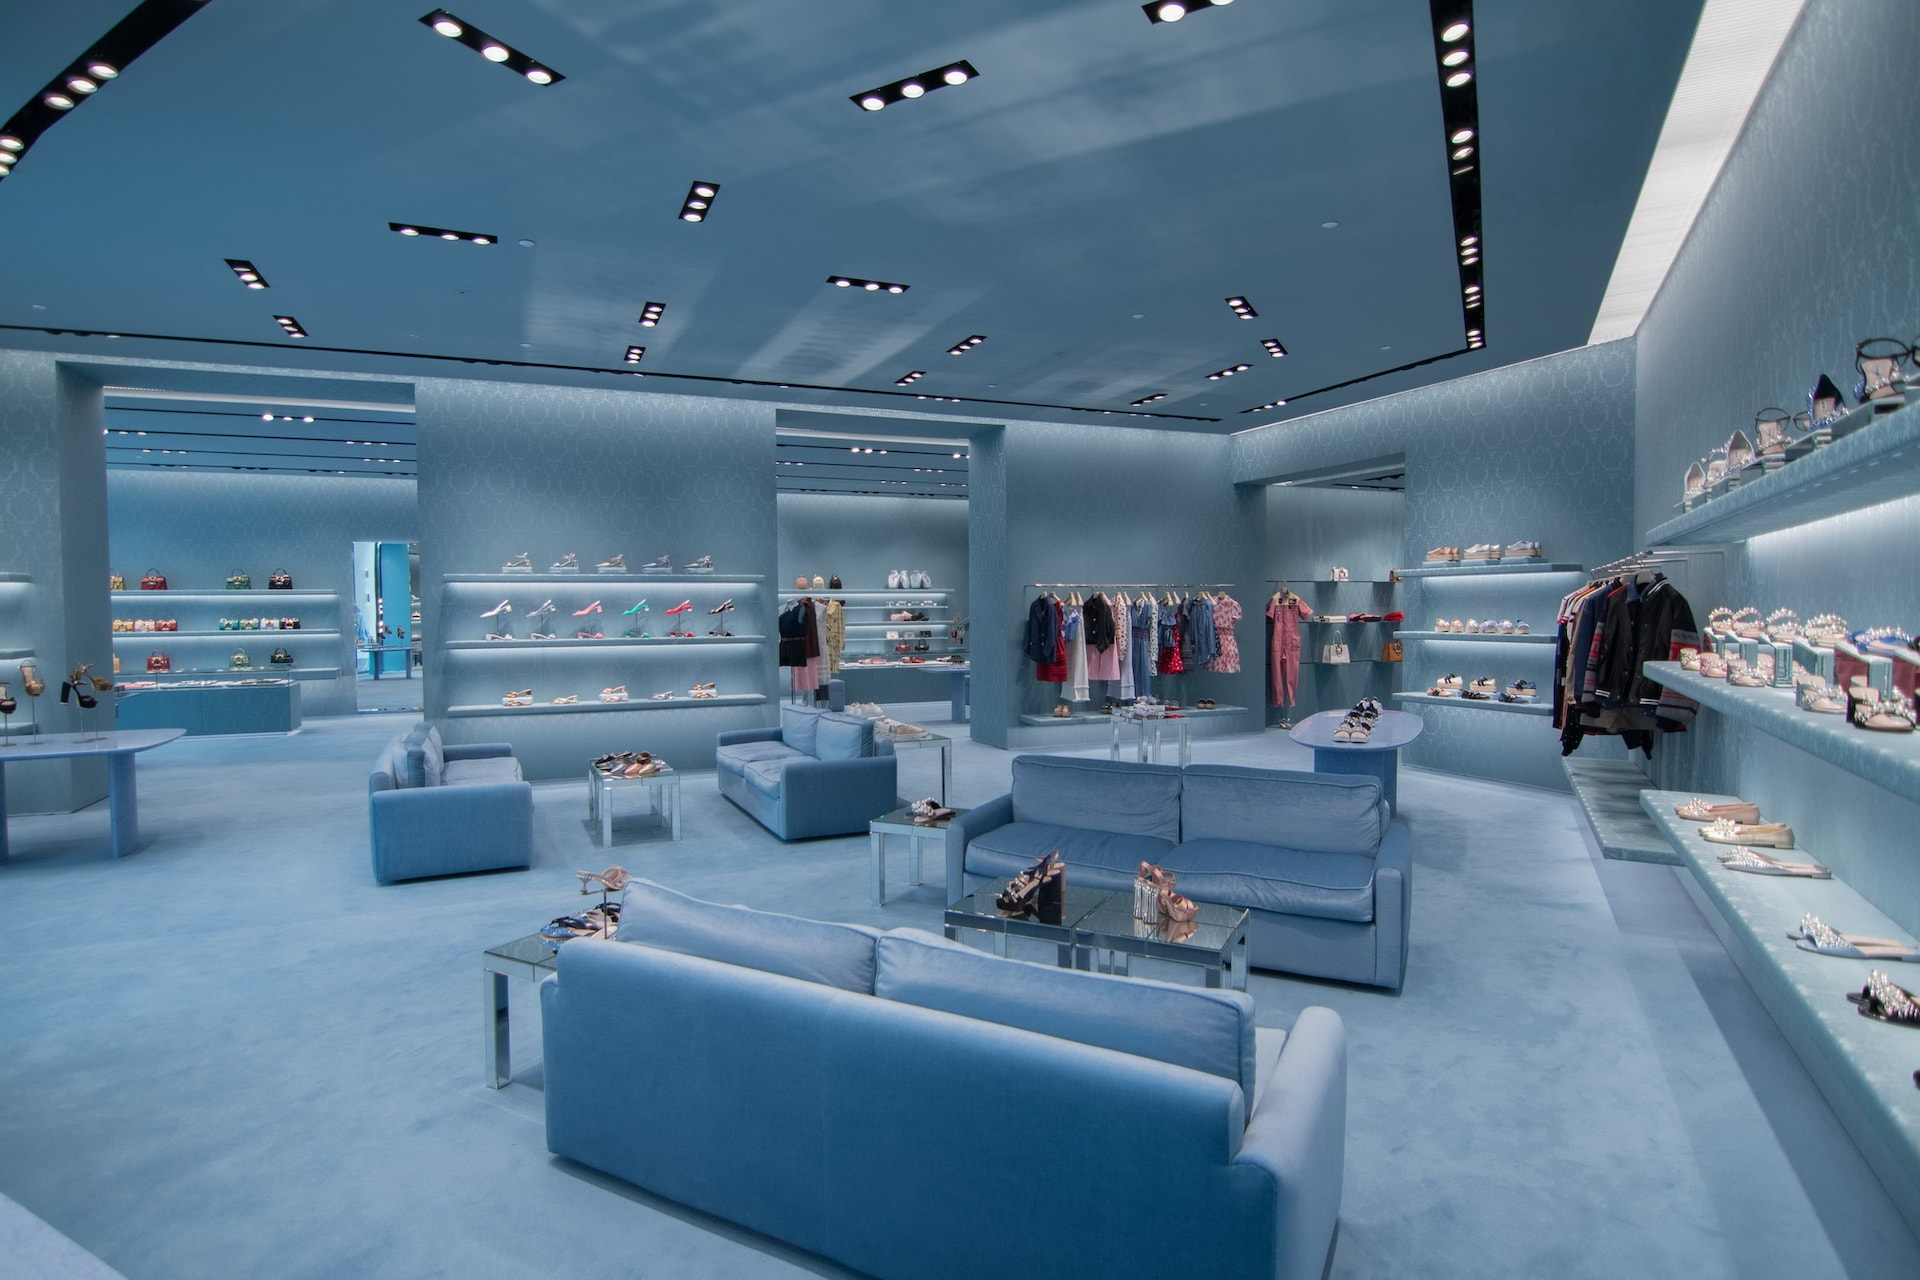 7a0c2701074a OFF. Share. previous news. MIU MIU OPENS INSIDE THE DUBAI MALL